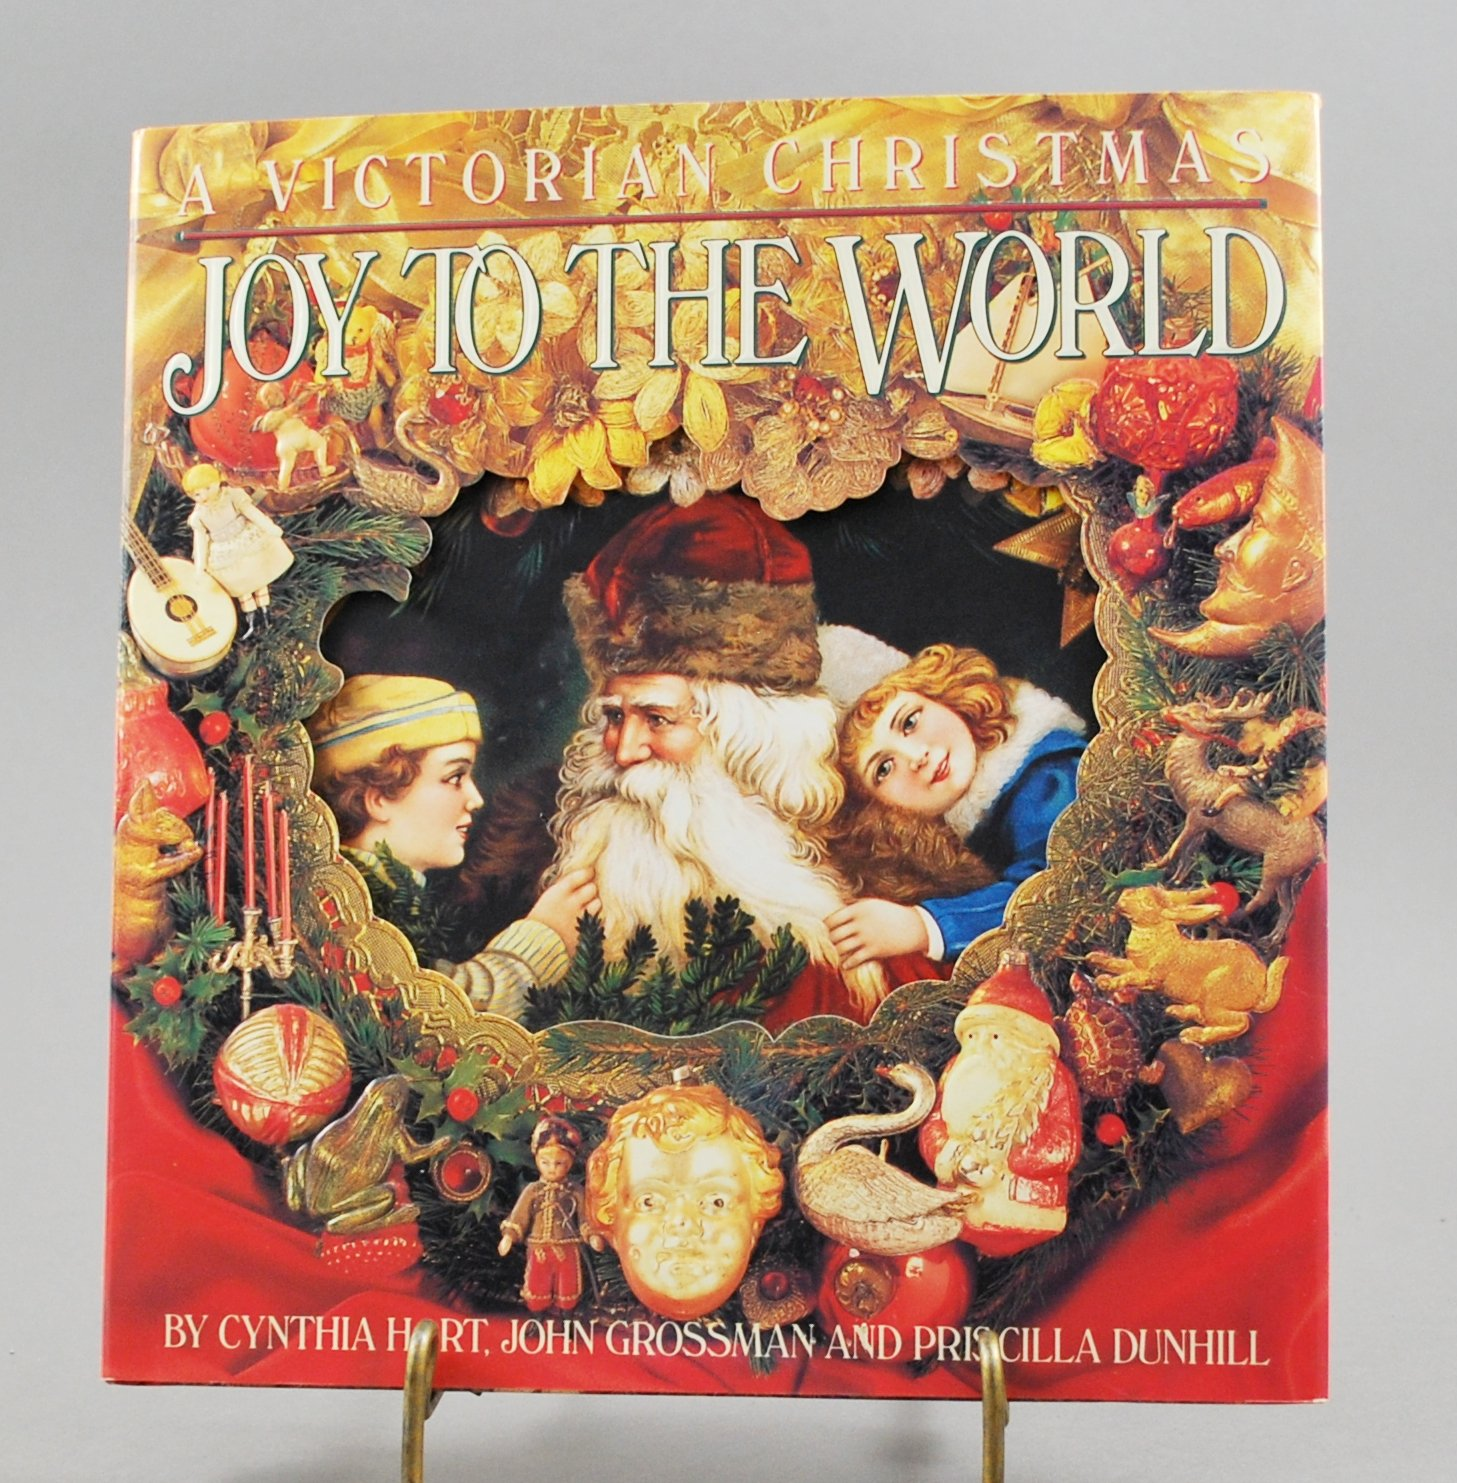 Joy To The World A Victorian Christmas by Cynthia Hart